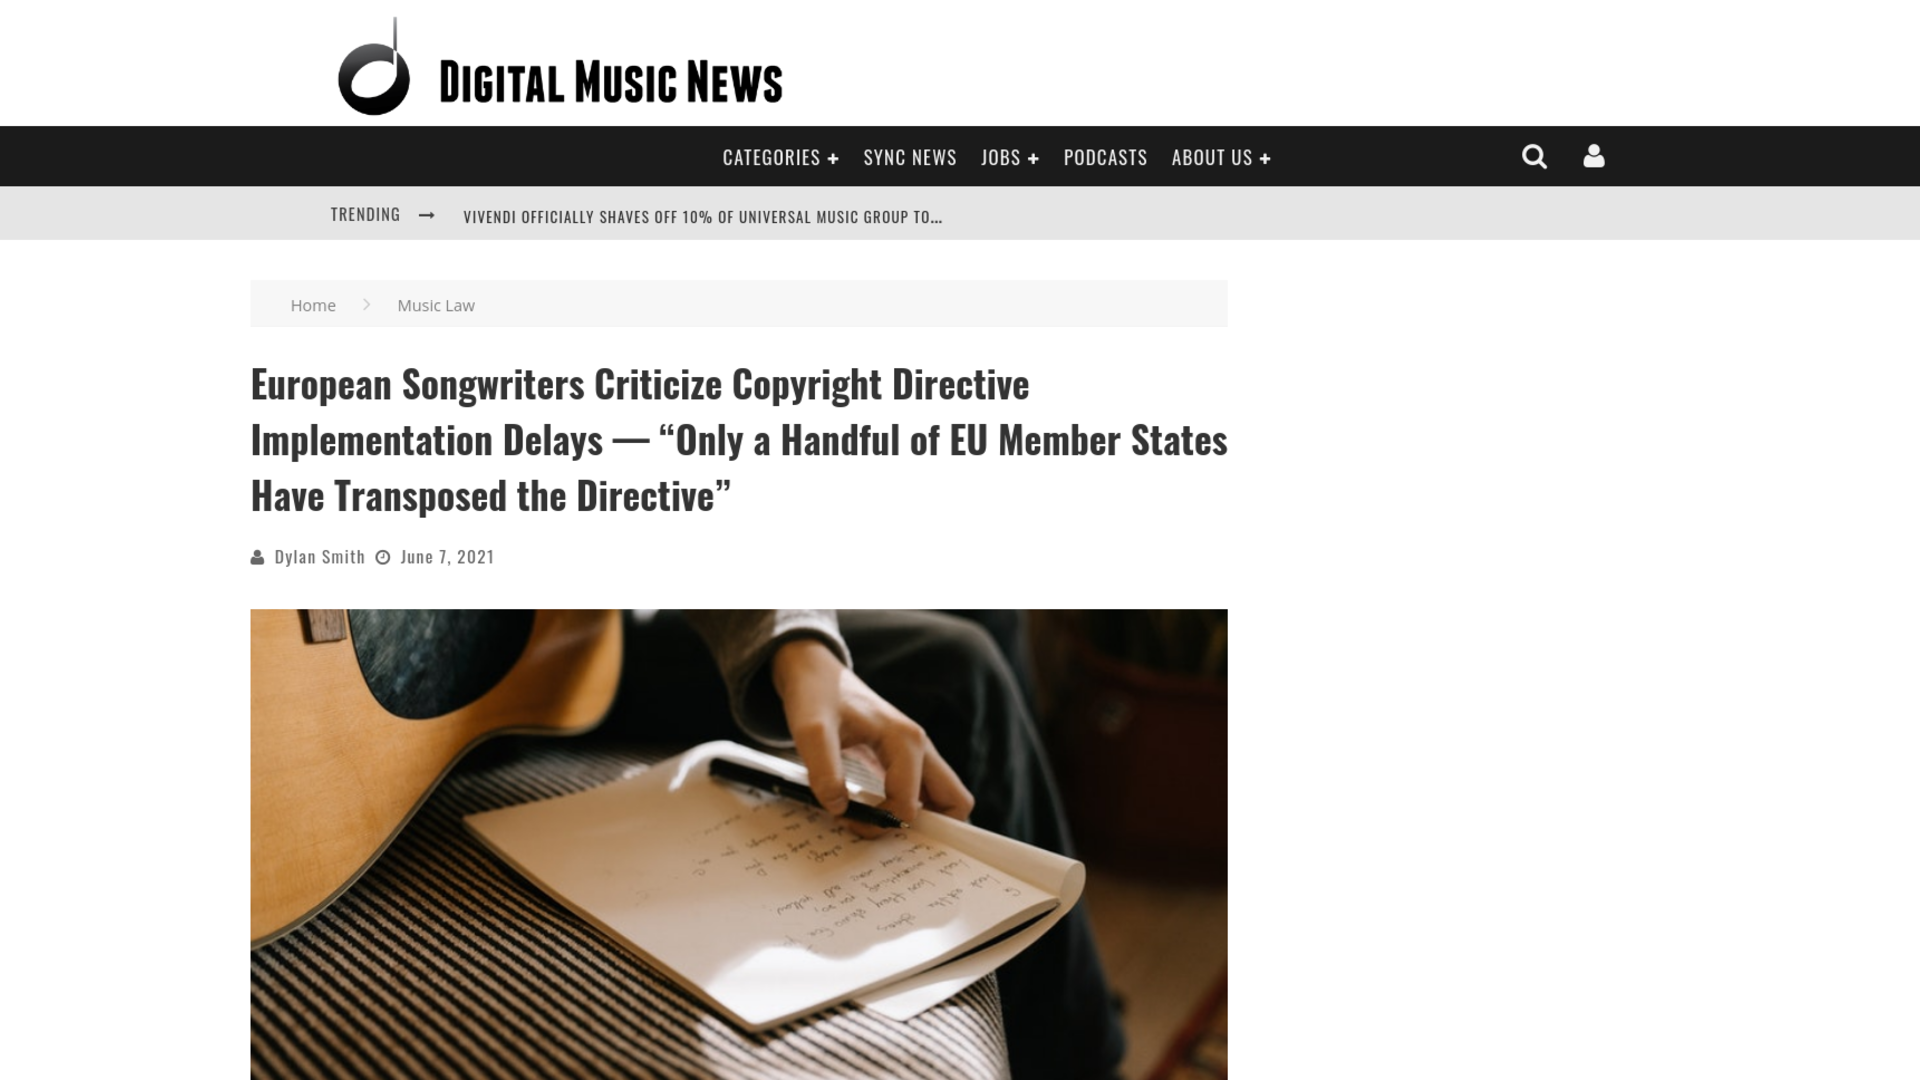 """Fairness Rocks News European Songwriters Criticize Copyright Directive Implementation Delays — """"Only a Handful of EU Member States Have Transposed the Directive"""""""